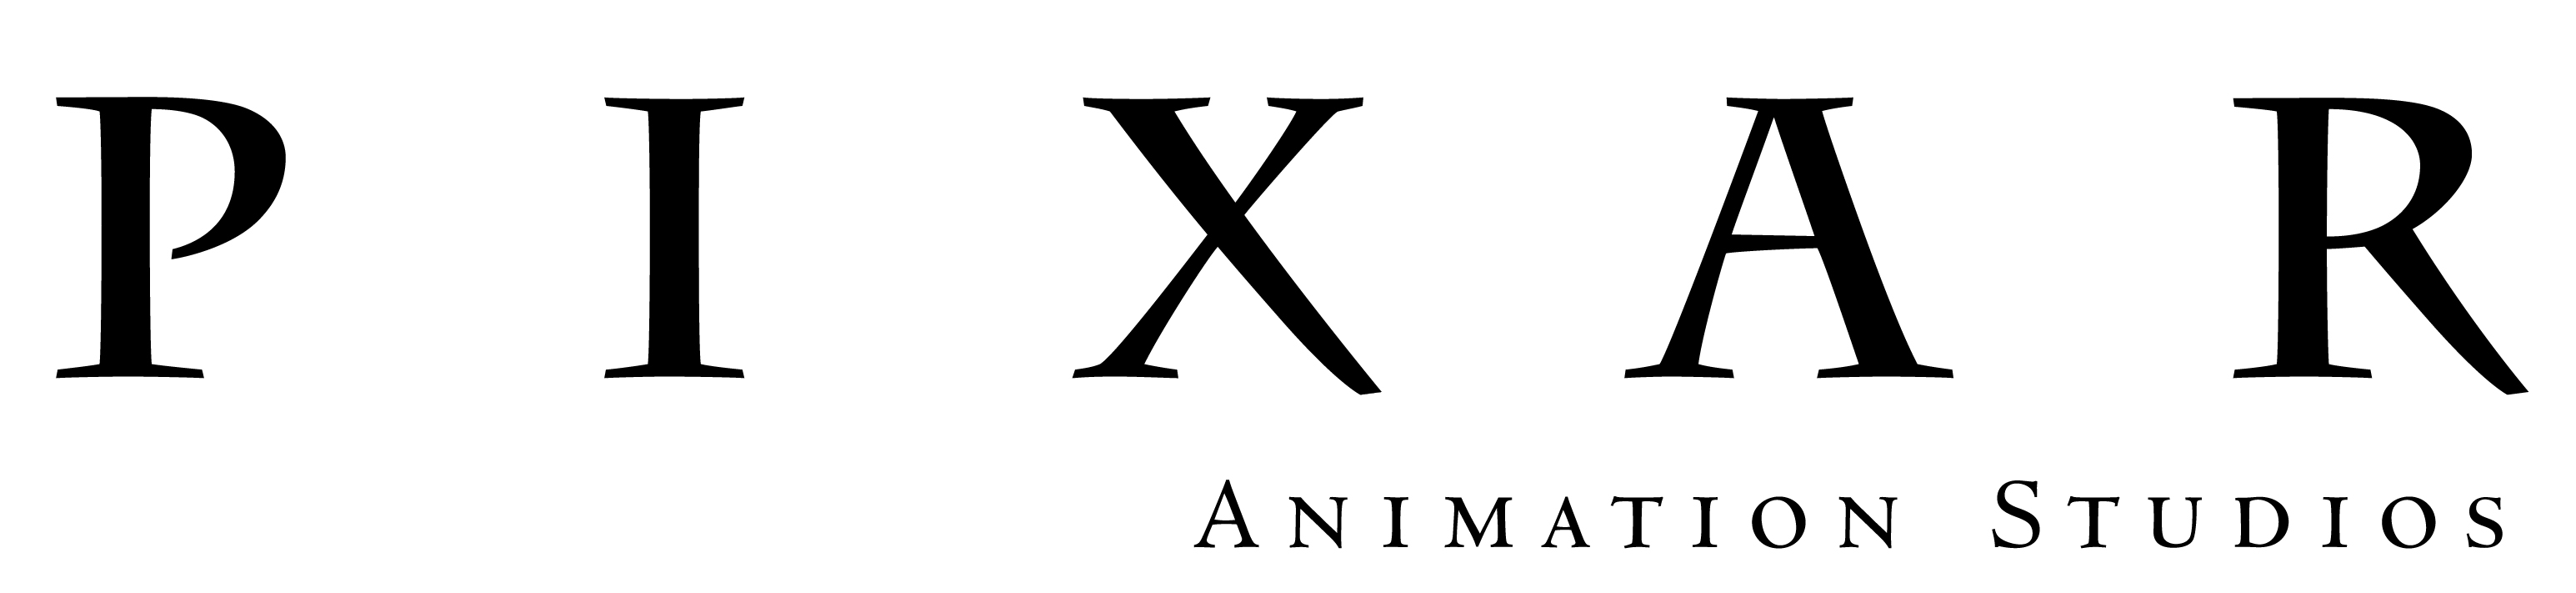 Logo of Pixar Animation Studios